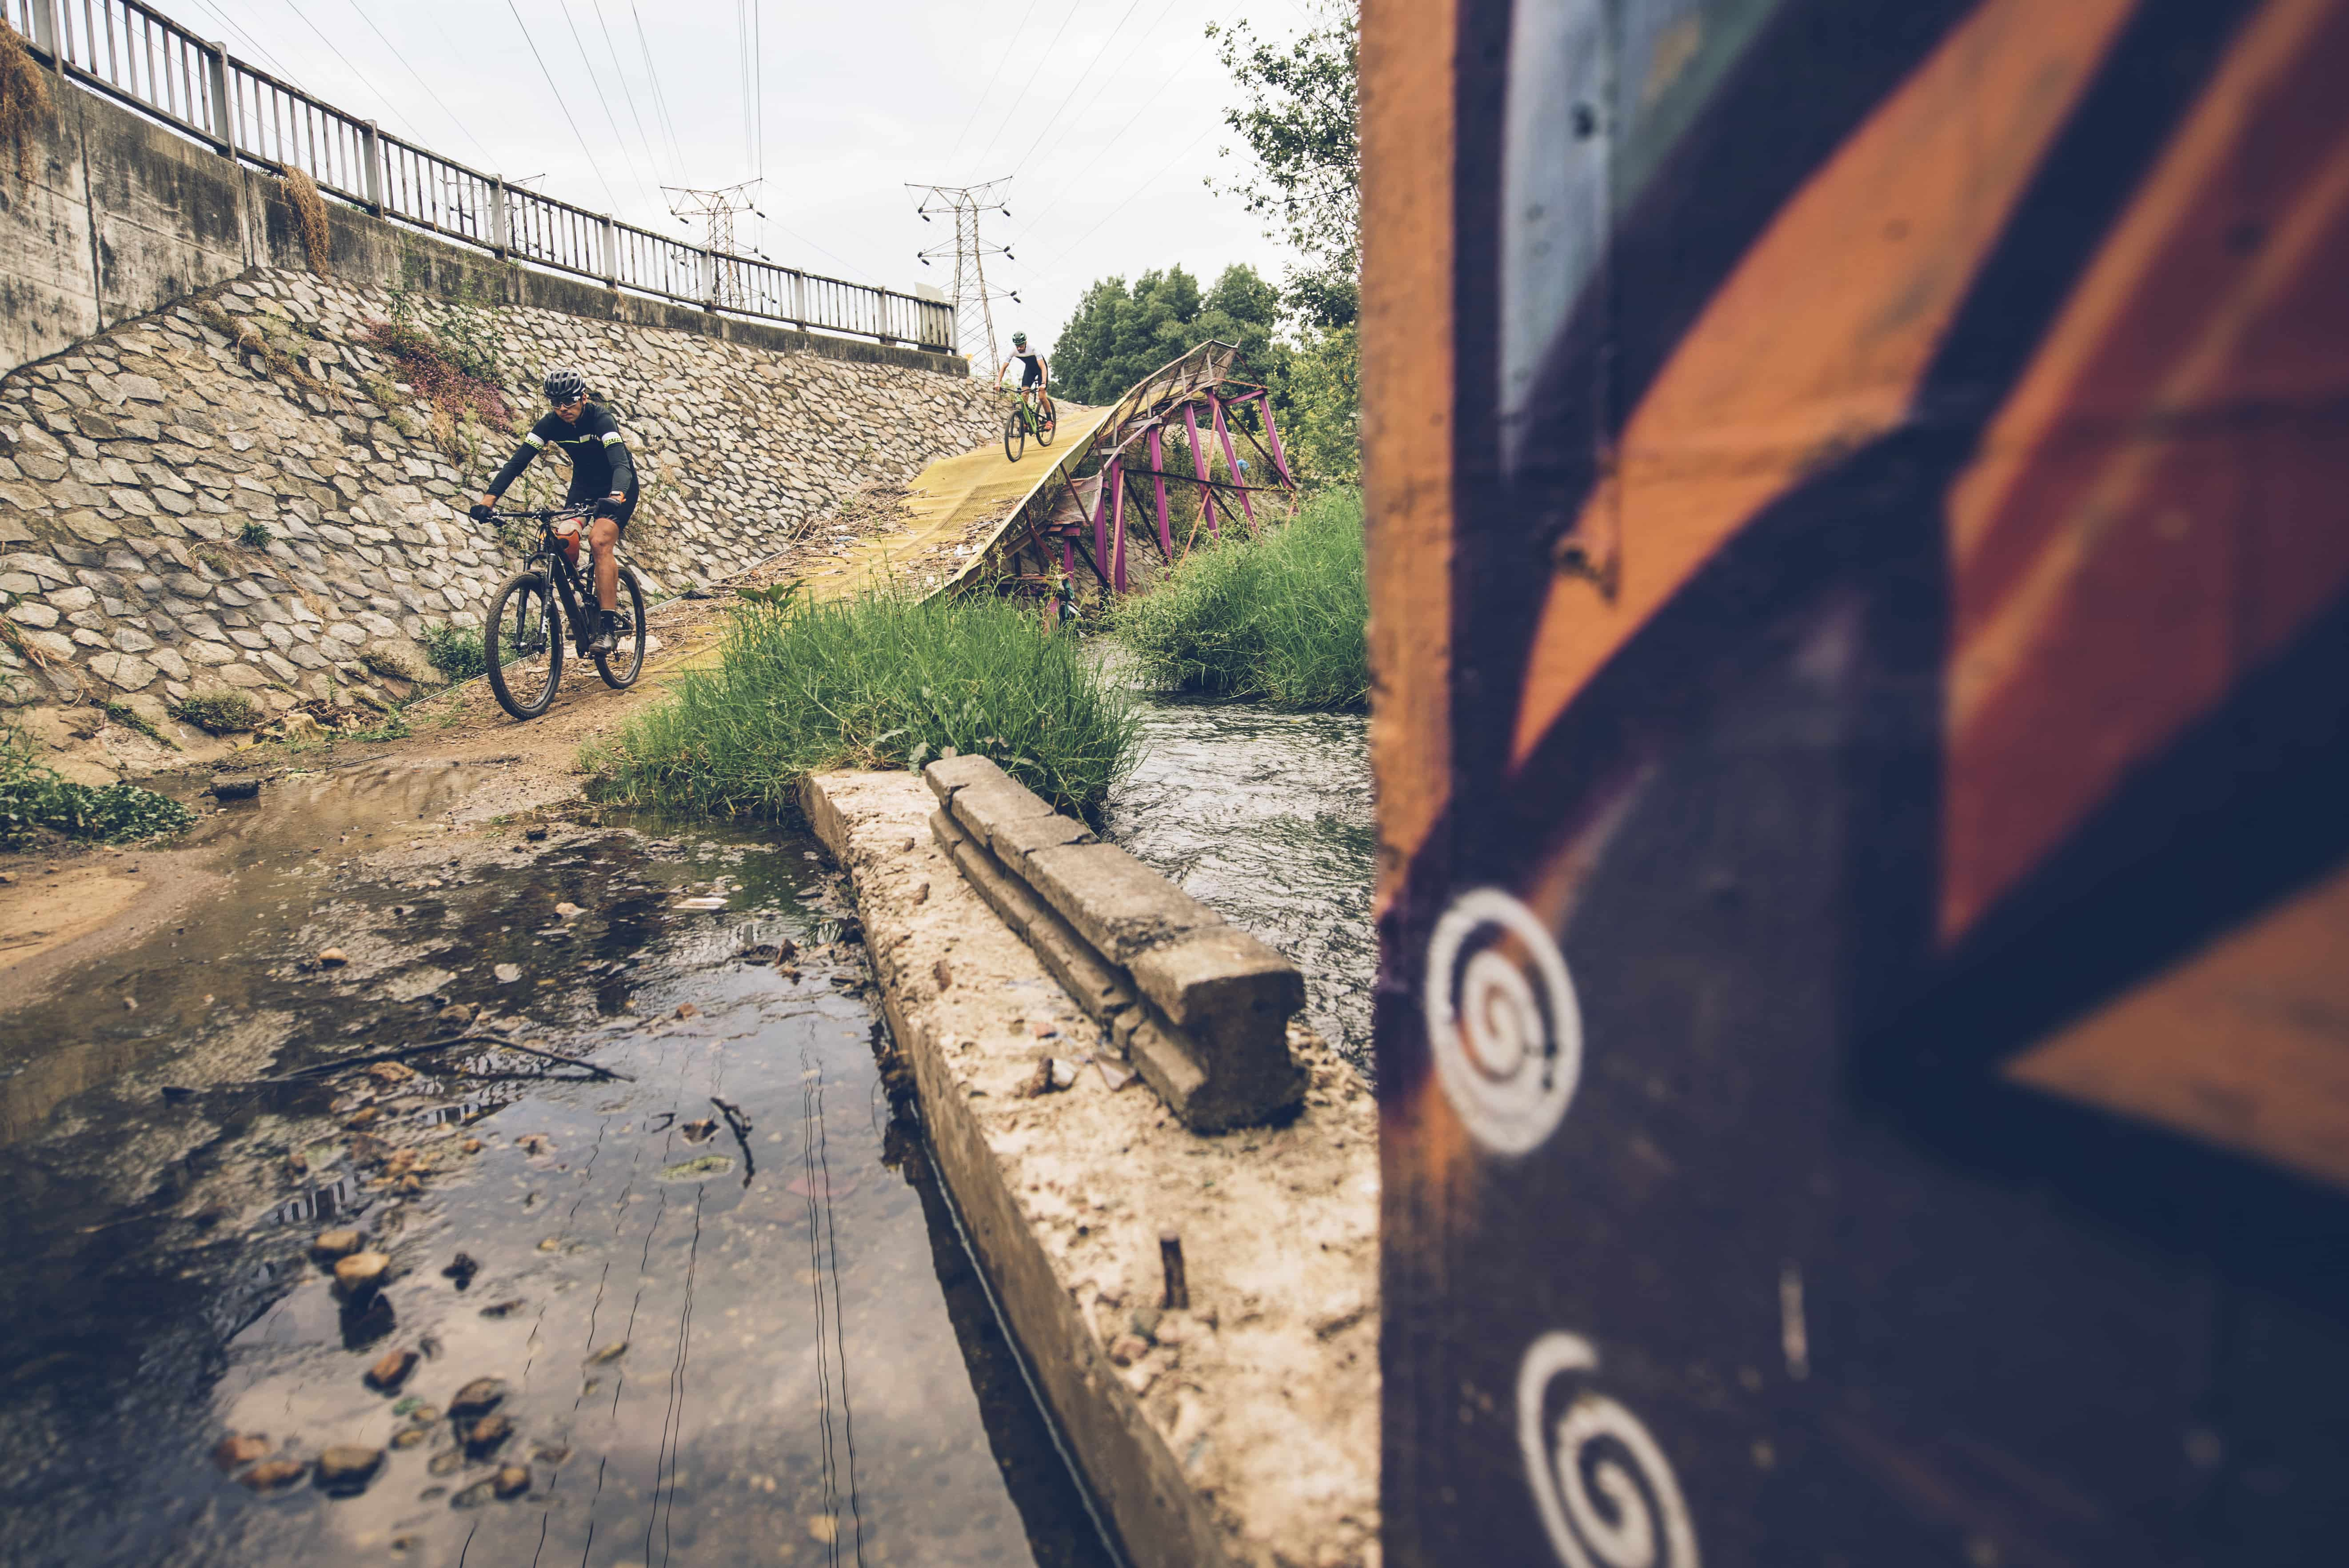 wow-rides-die-spruit-bicycling-magazine-dna-photograpers-31